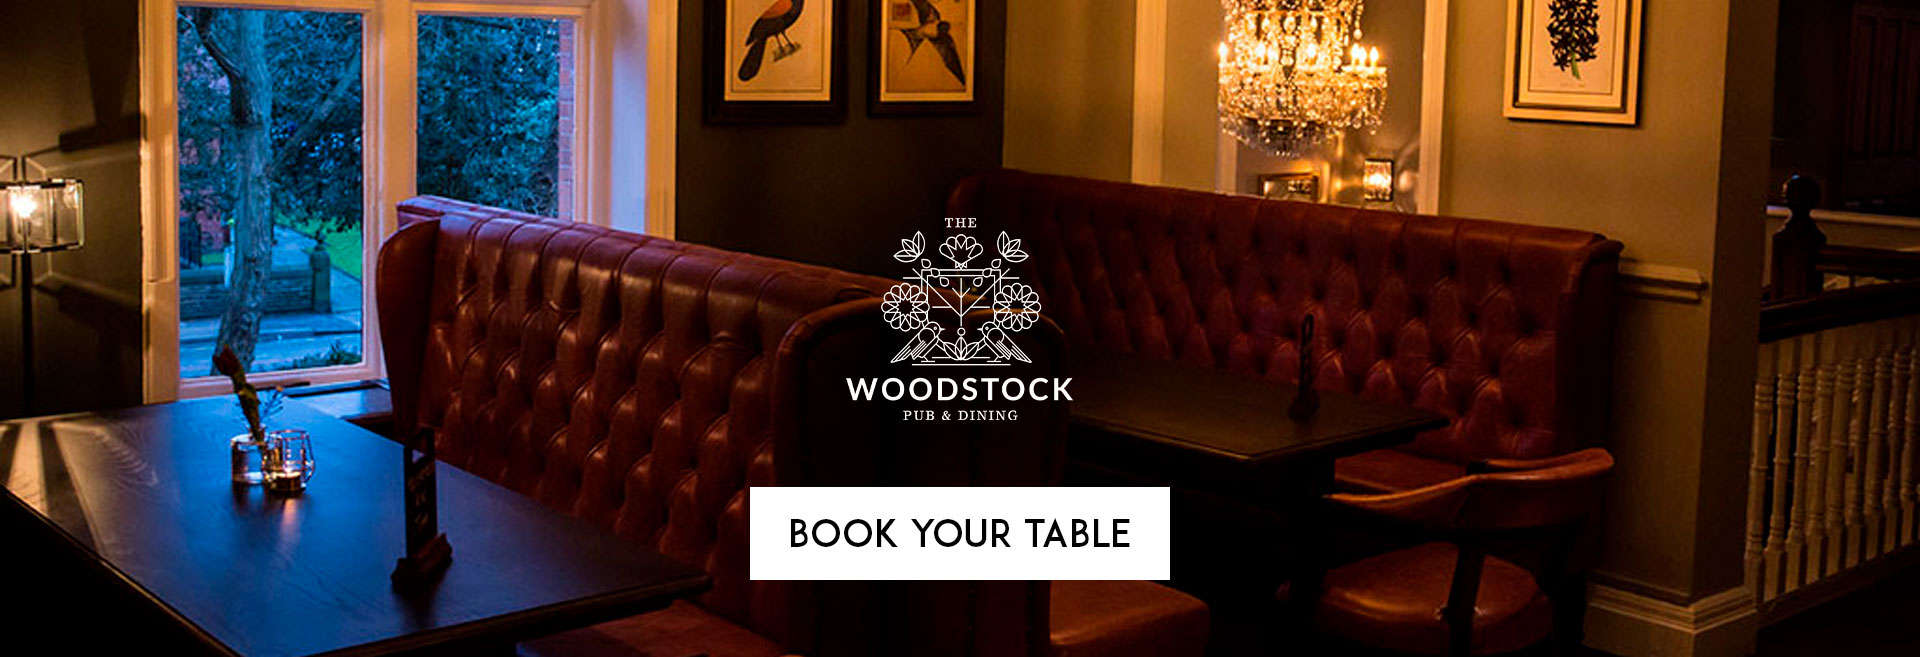 Book Your Table at The Woodstock Arms